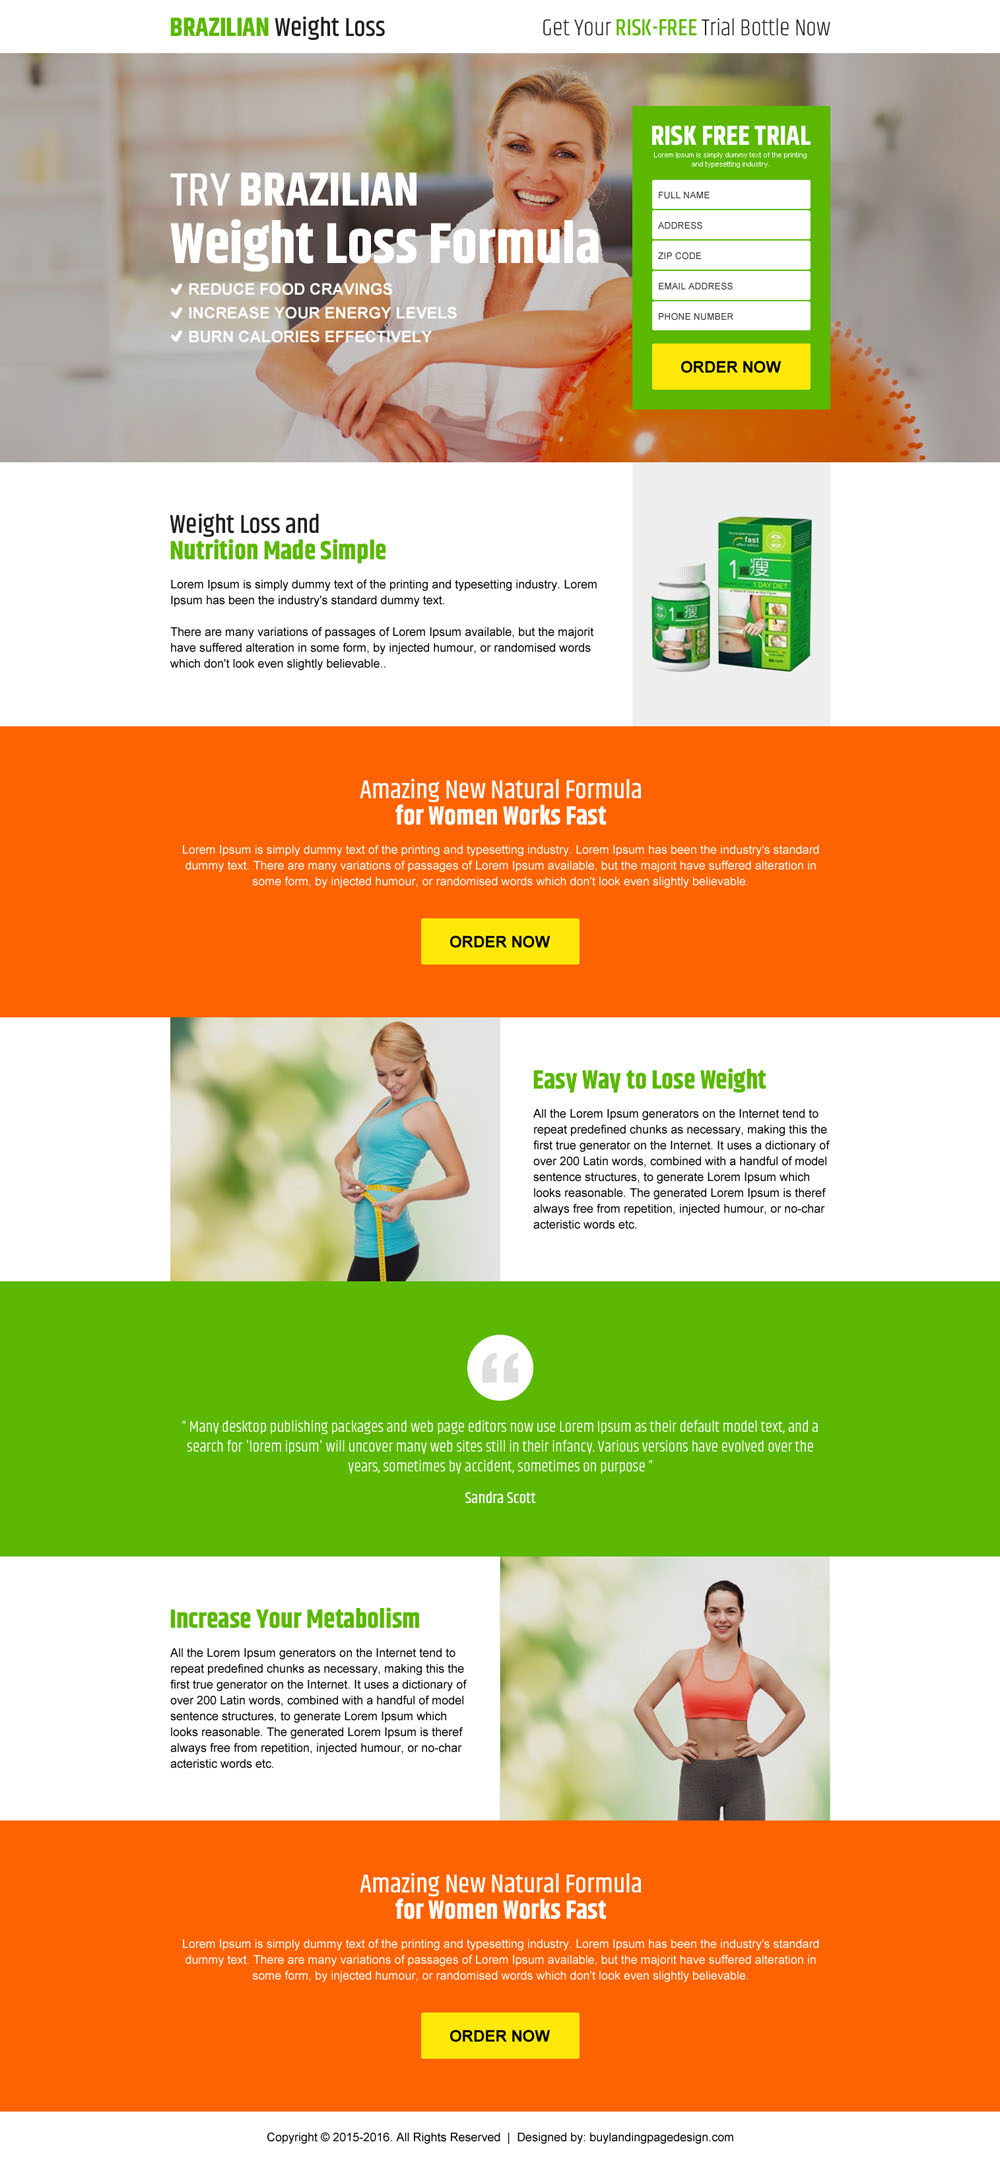 brazilian-weight-loss-product-selling-high-converting-landing-page-design-041